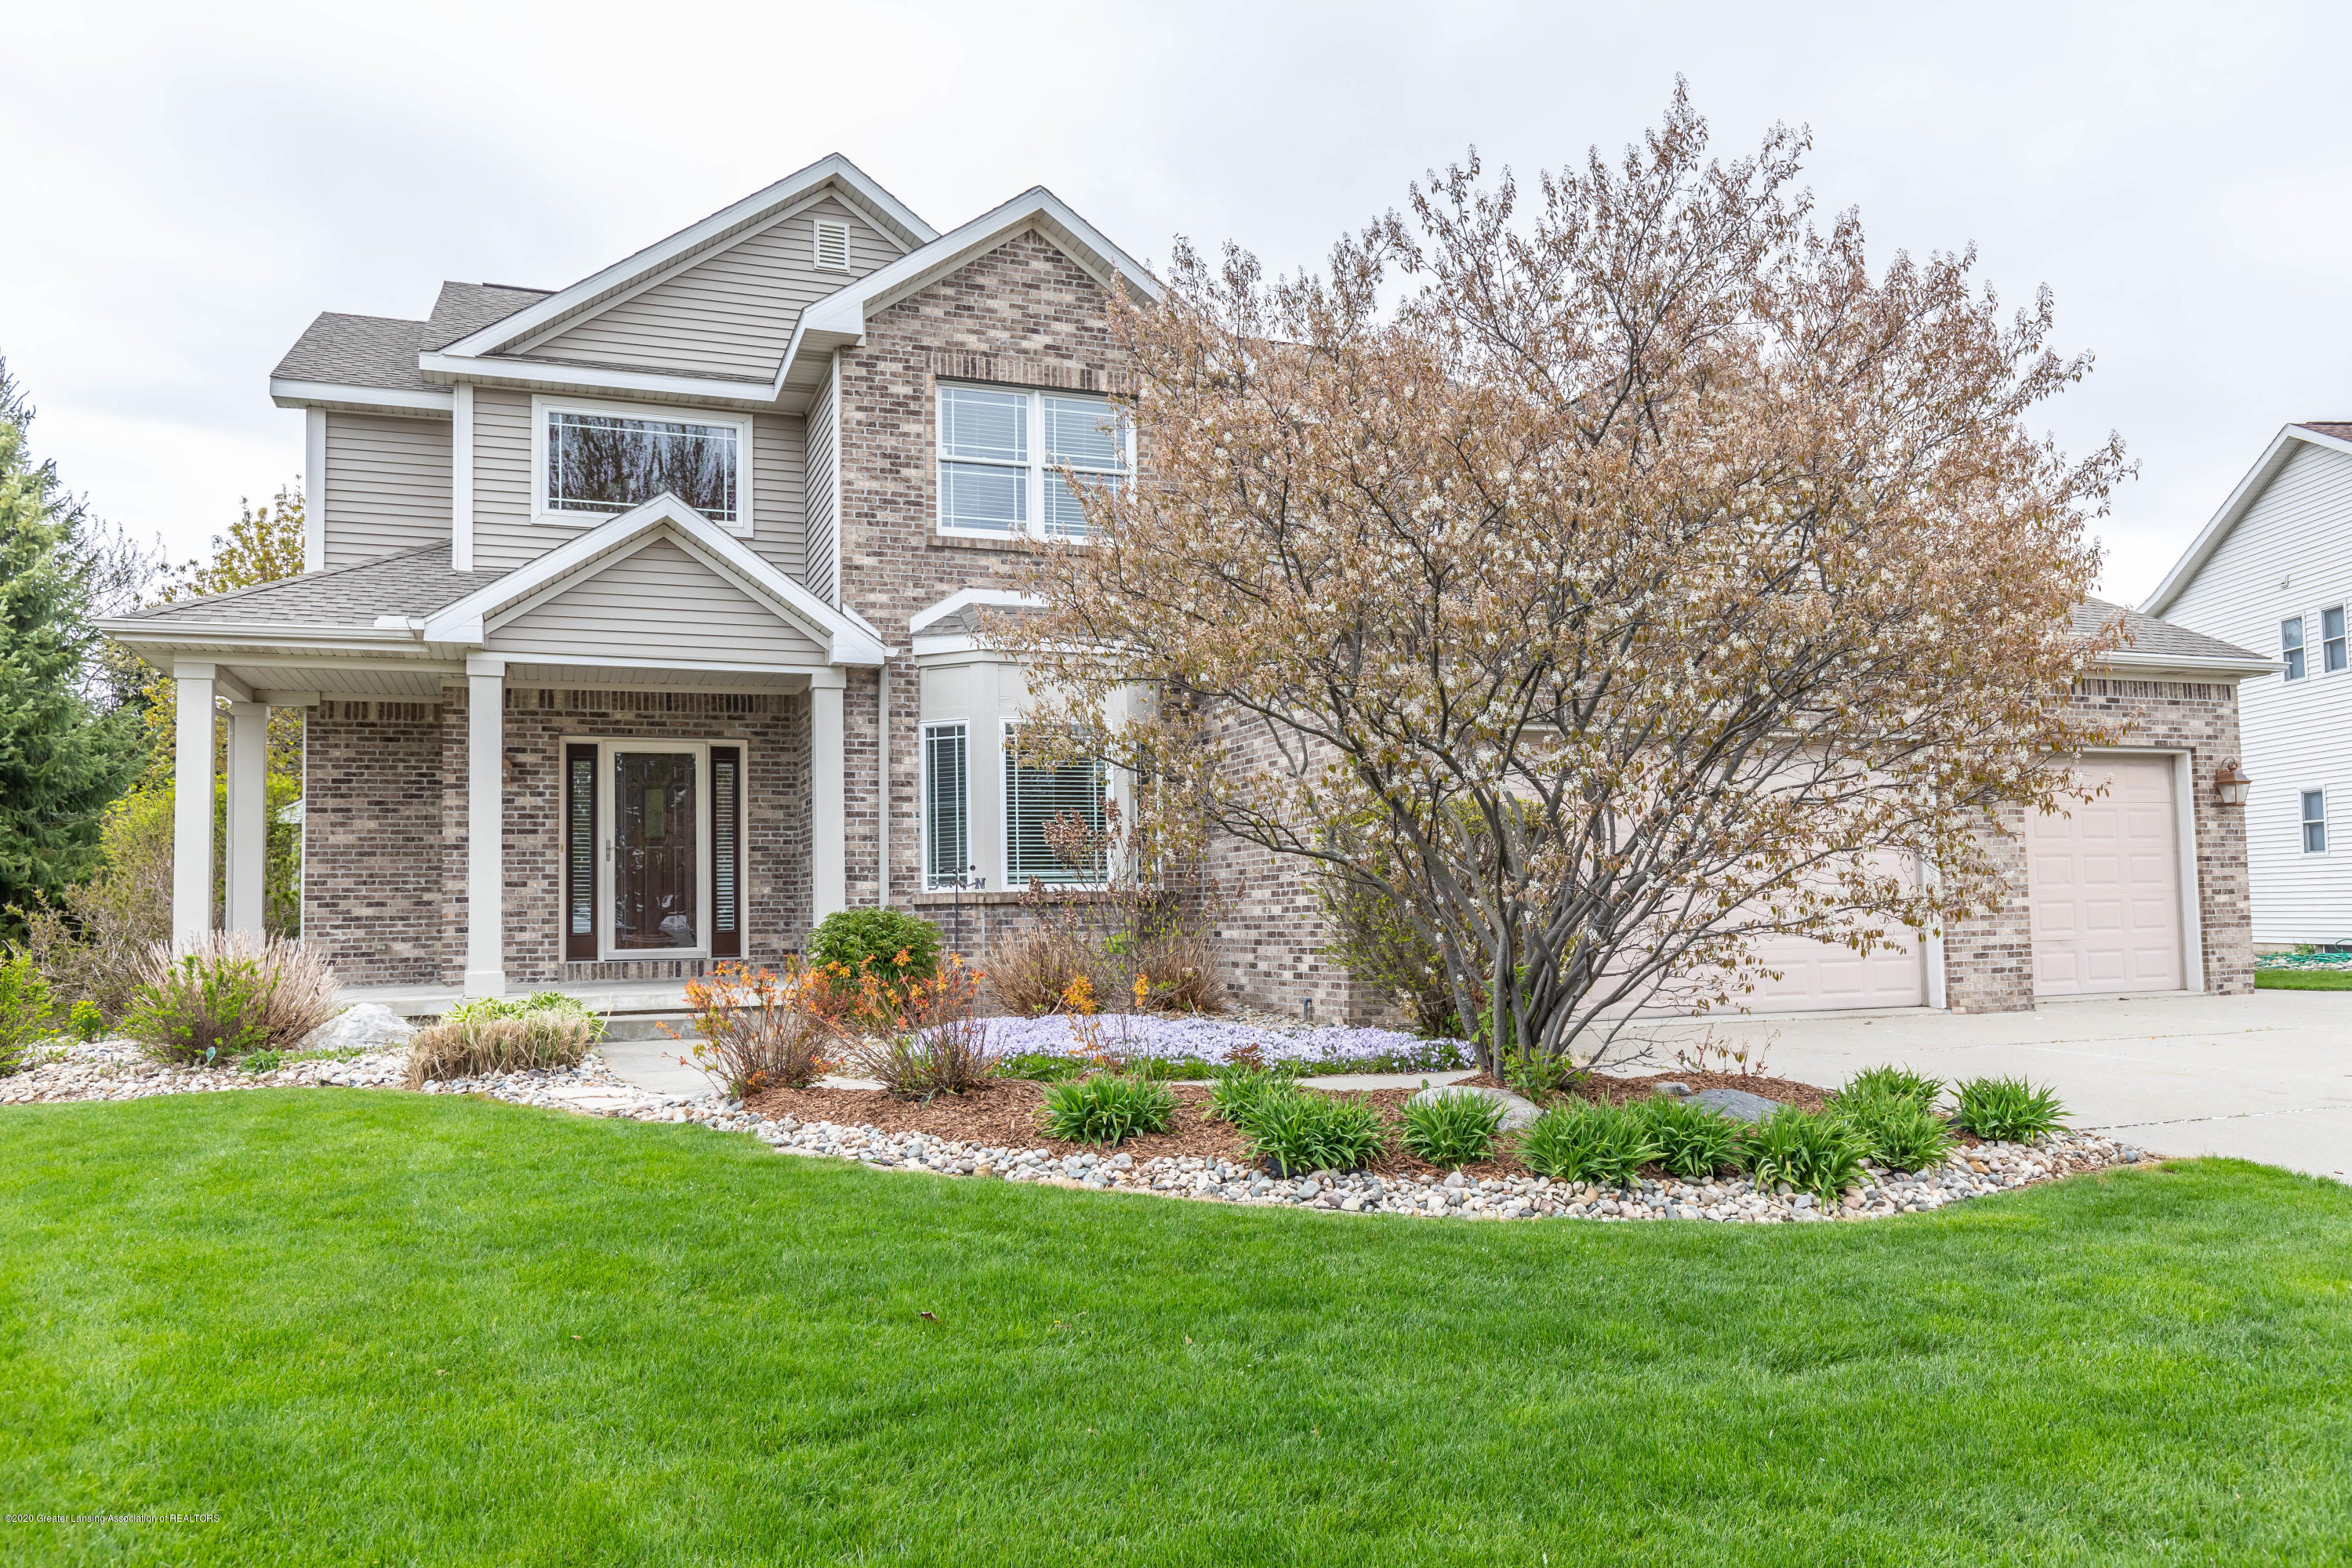 12810 Chartreuse Dr - chartreusefront (1 of 1) - 2